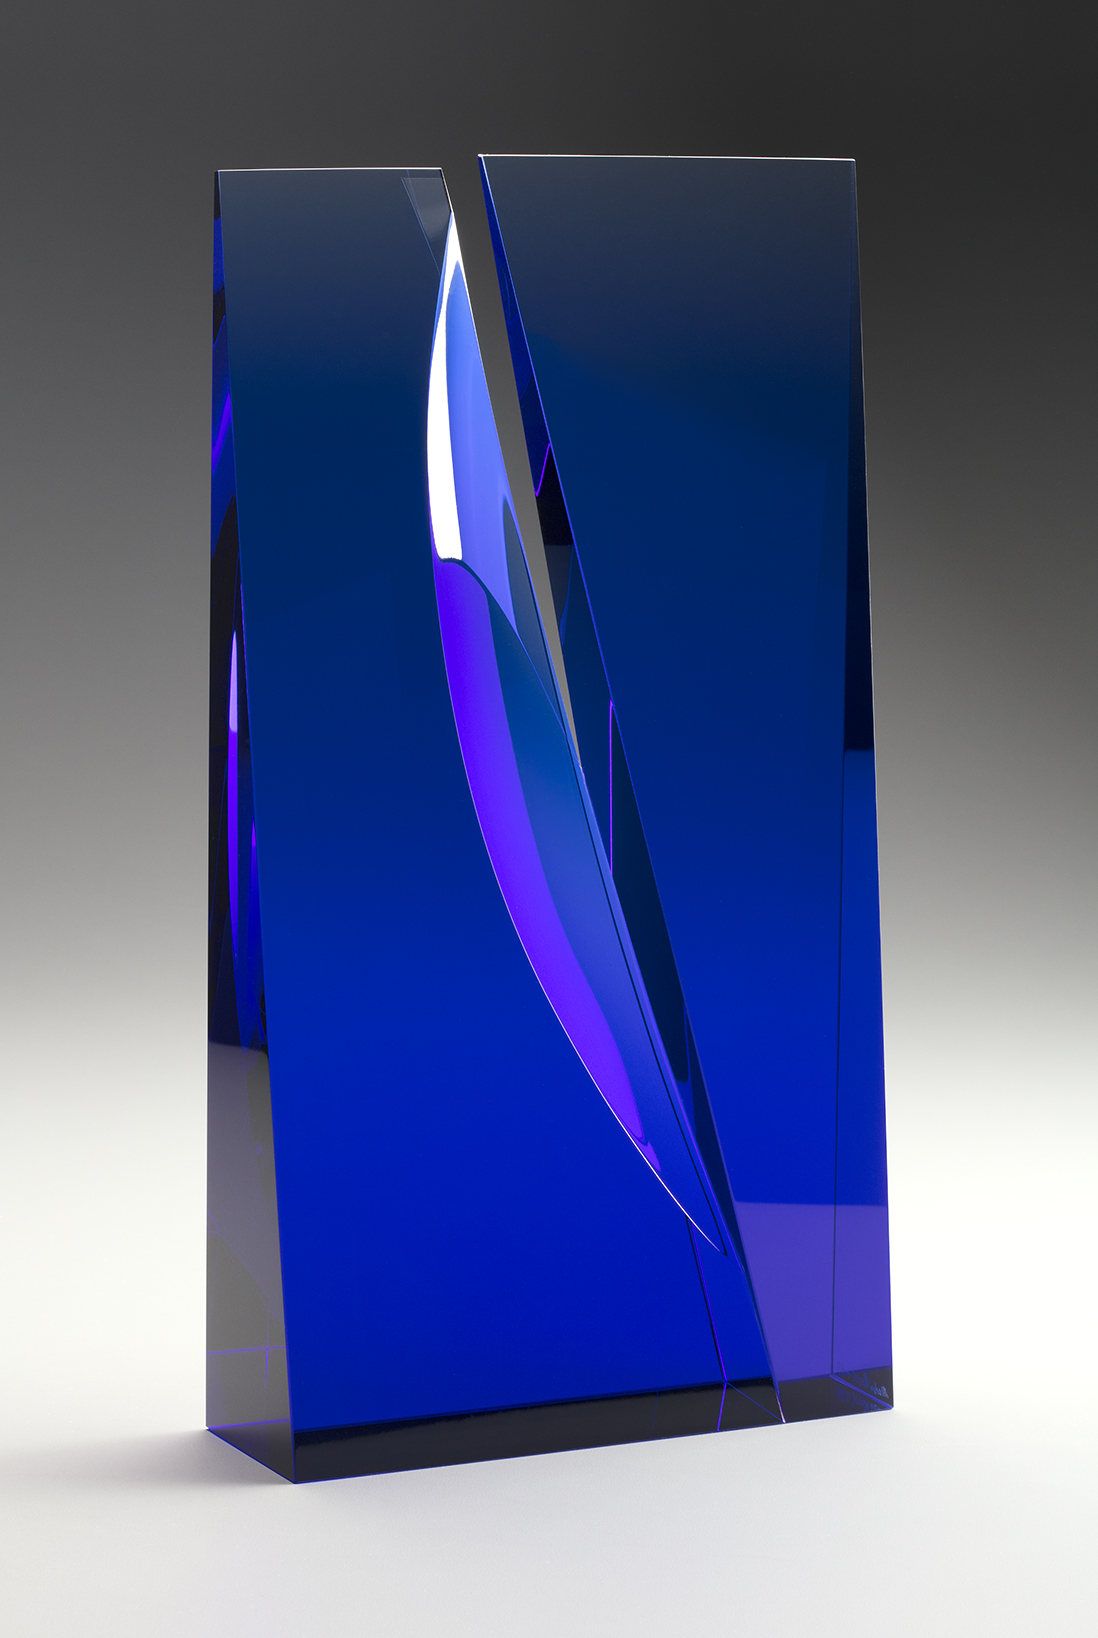 Laminated blue glass sculpture by Martin Rosol